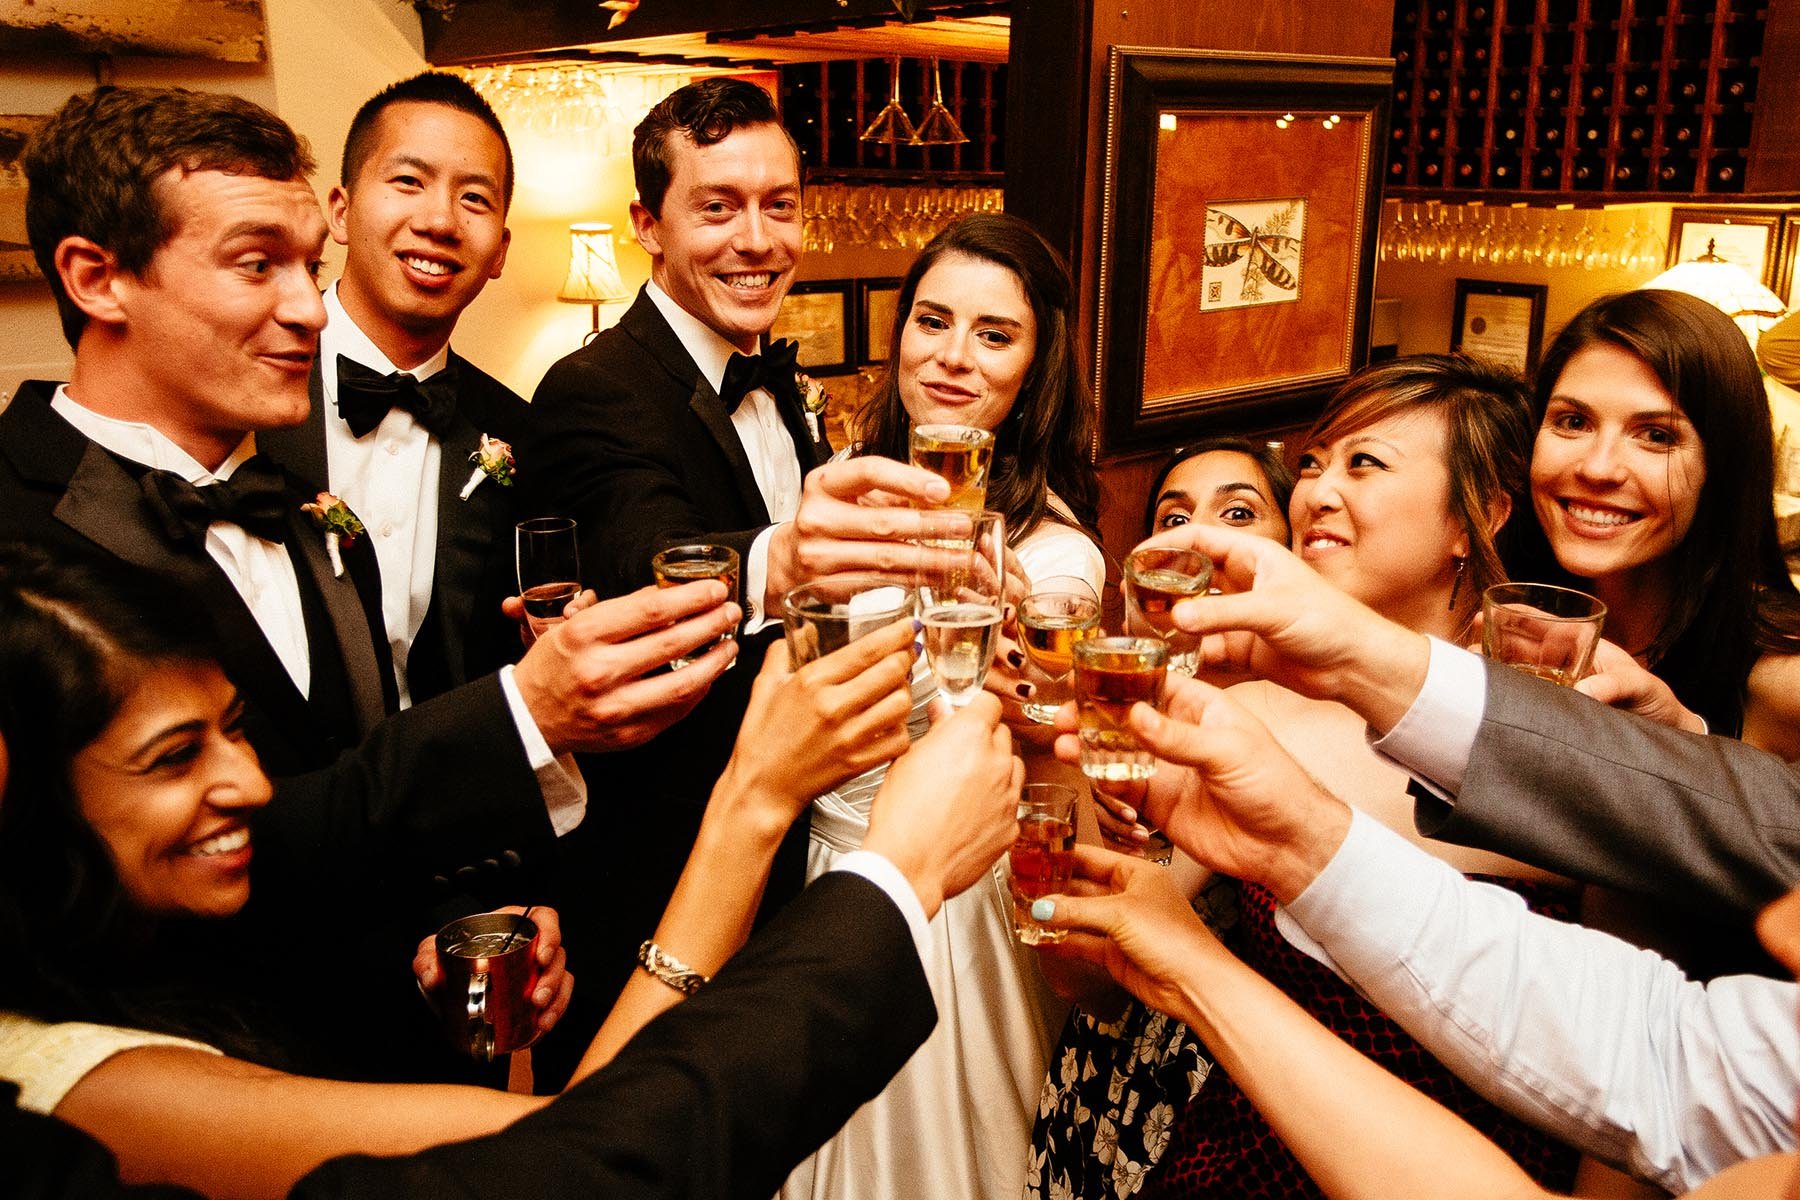 Wedding couples shares a toast with their guests at the Craftwood Inn.